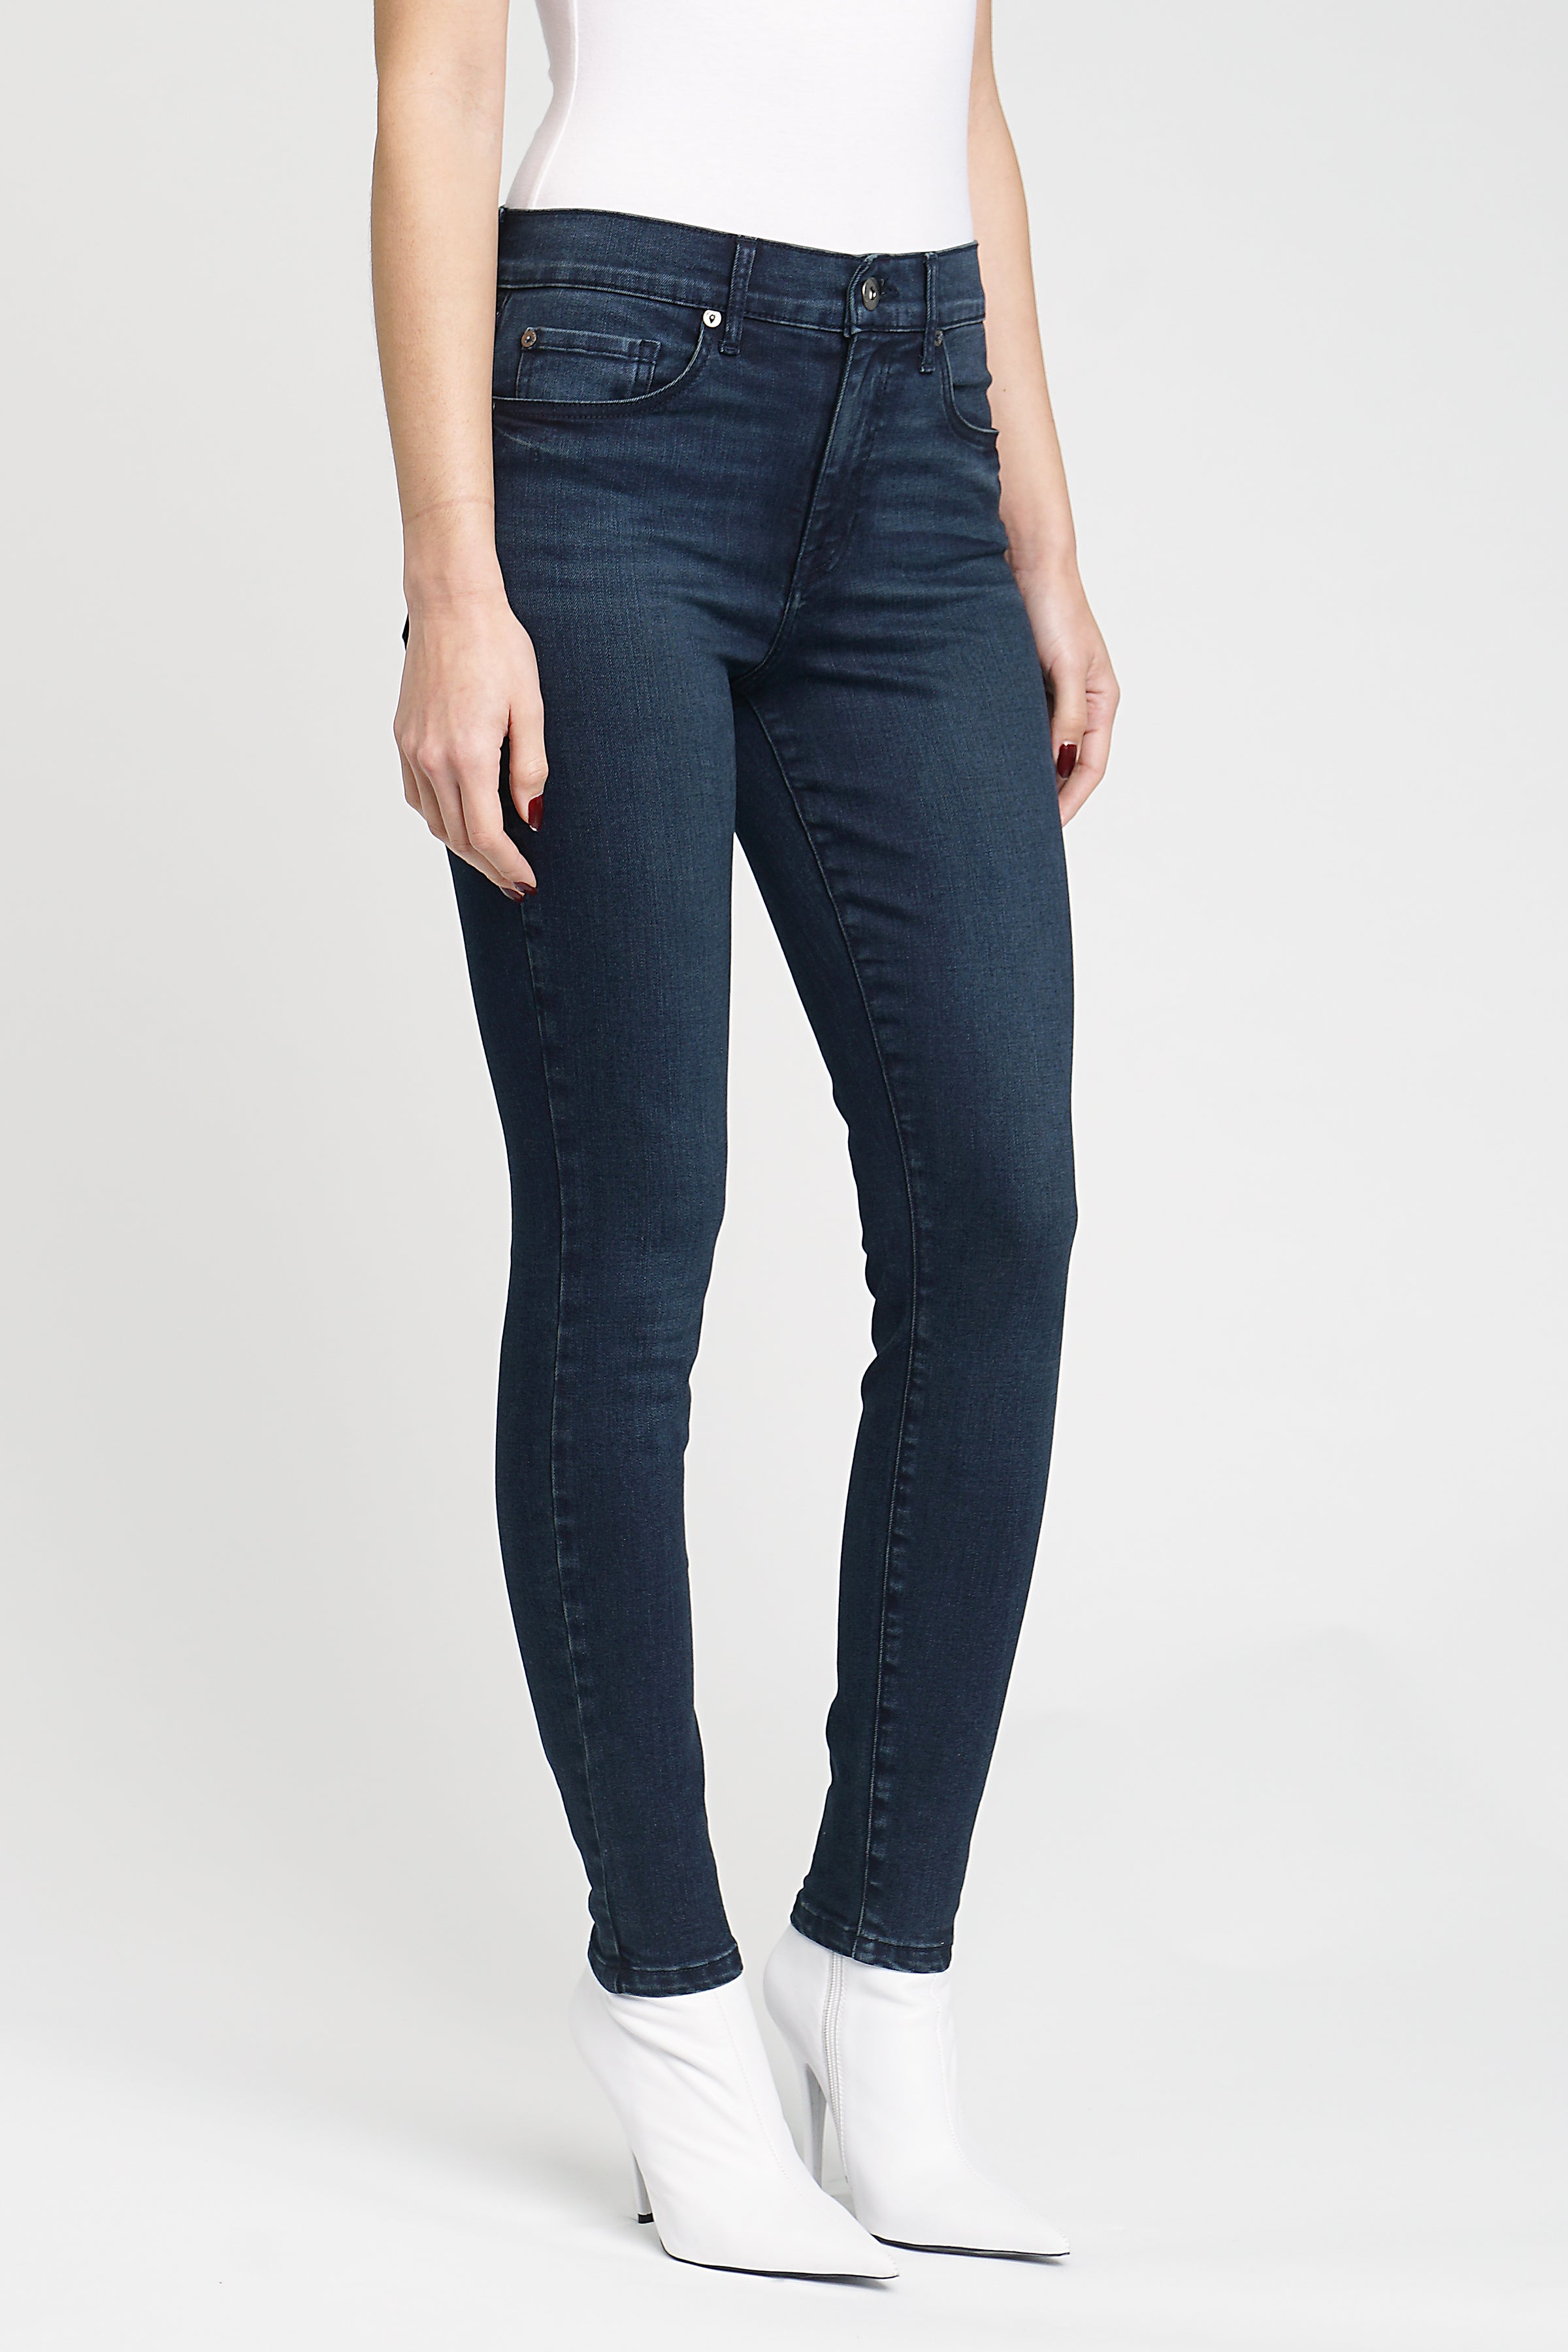 Aline High Rise Skinny - When In Rome